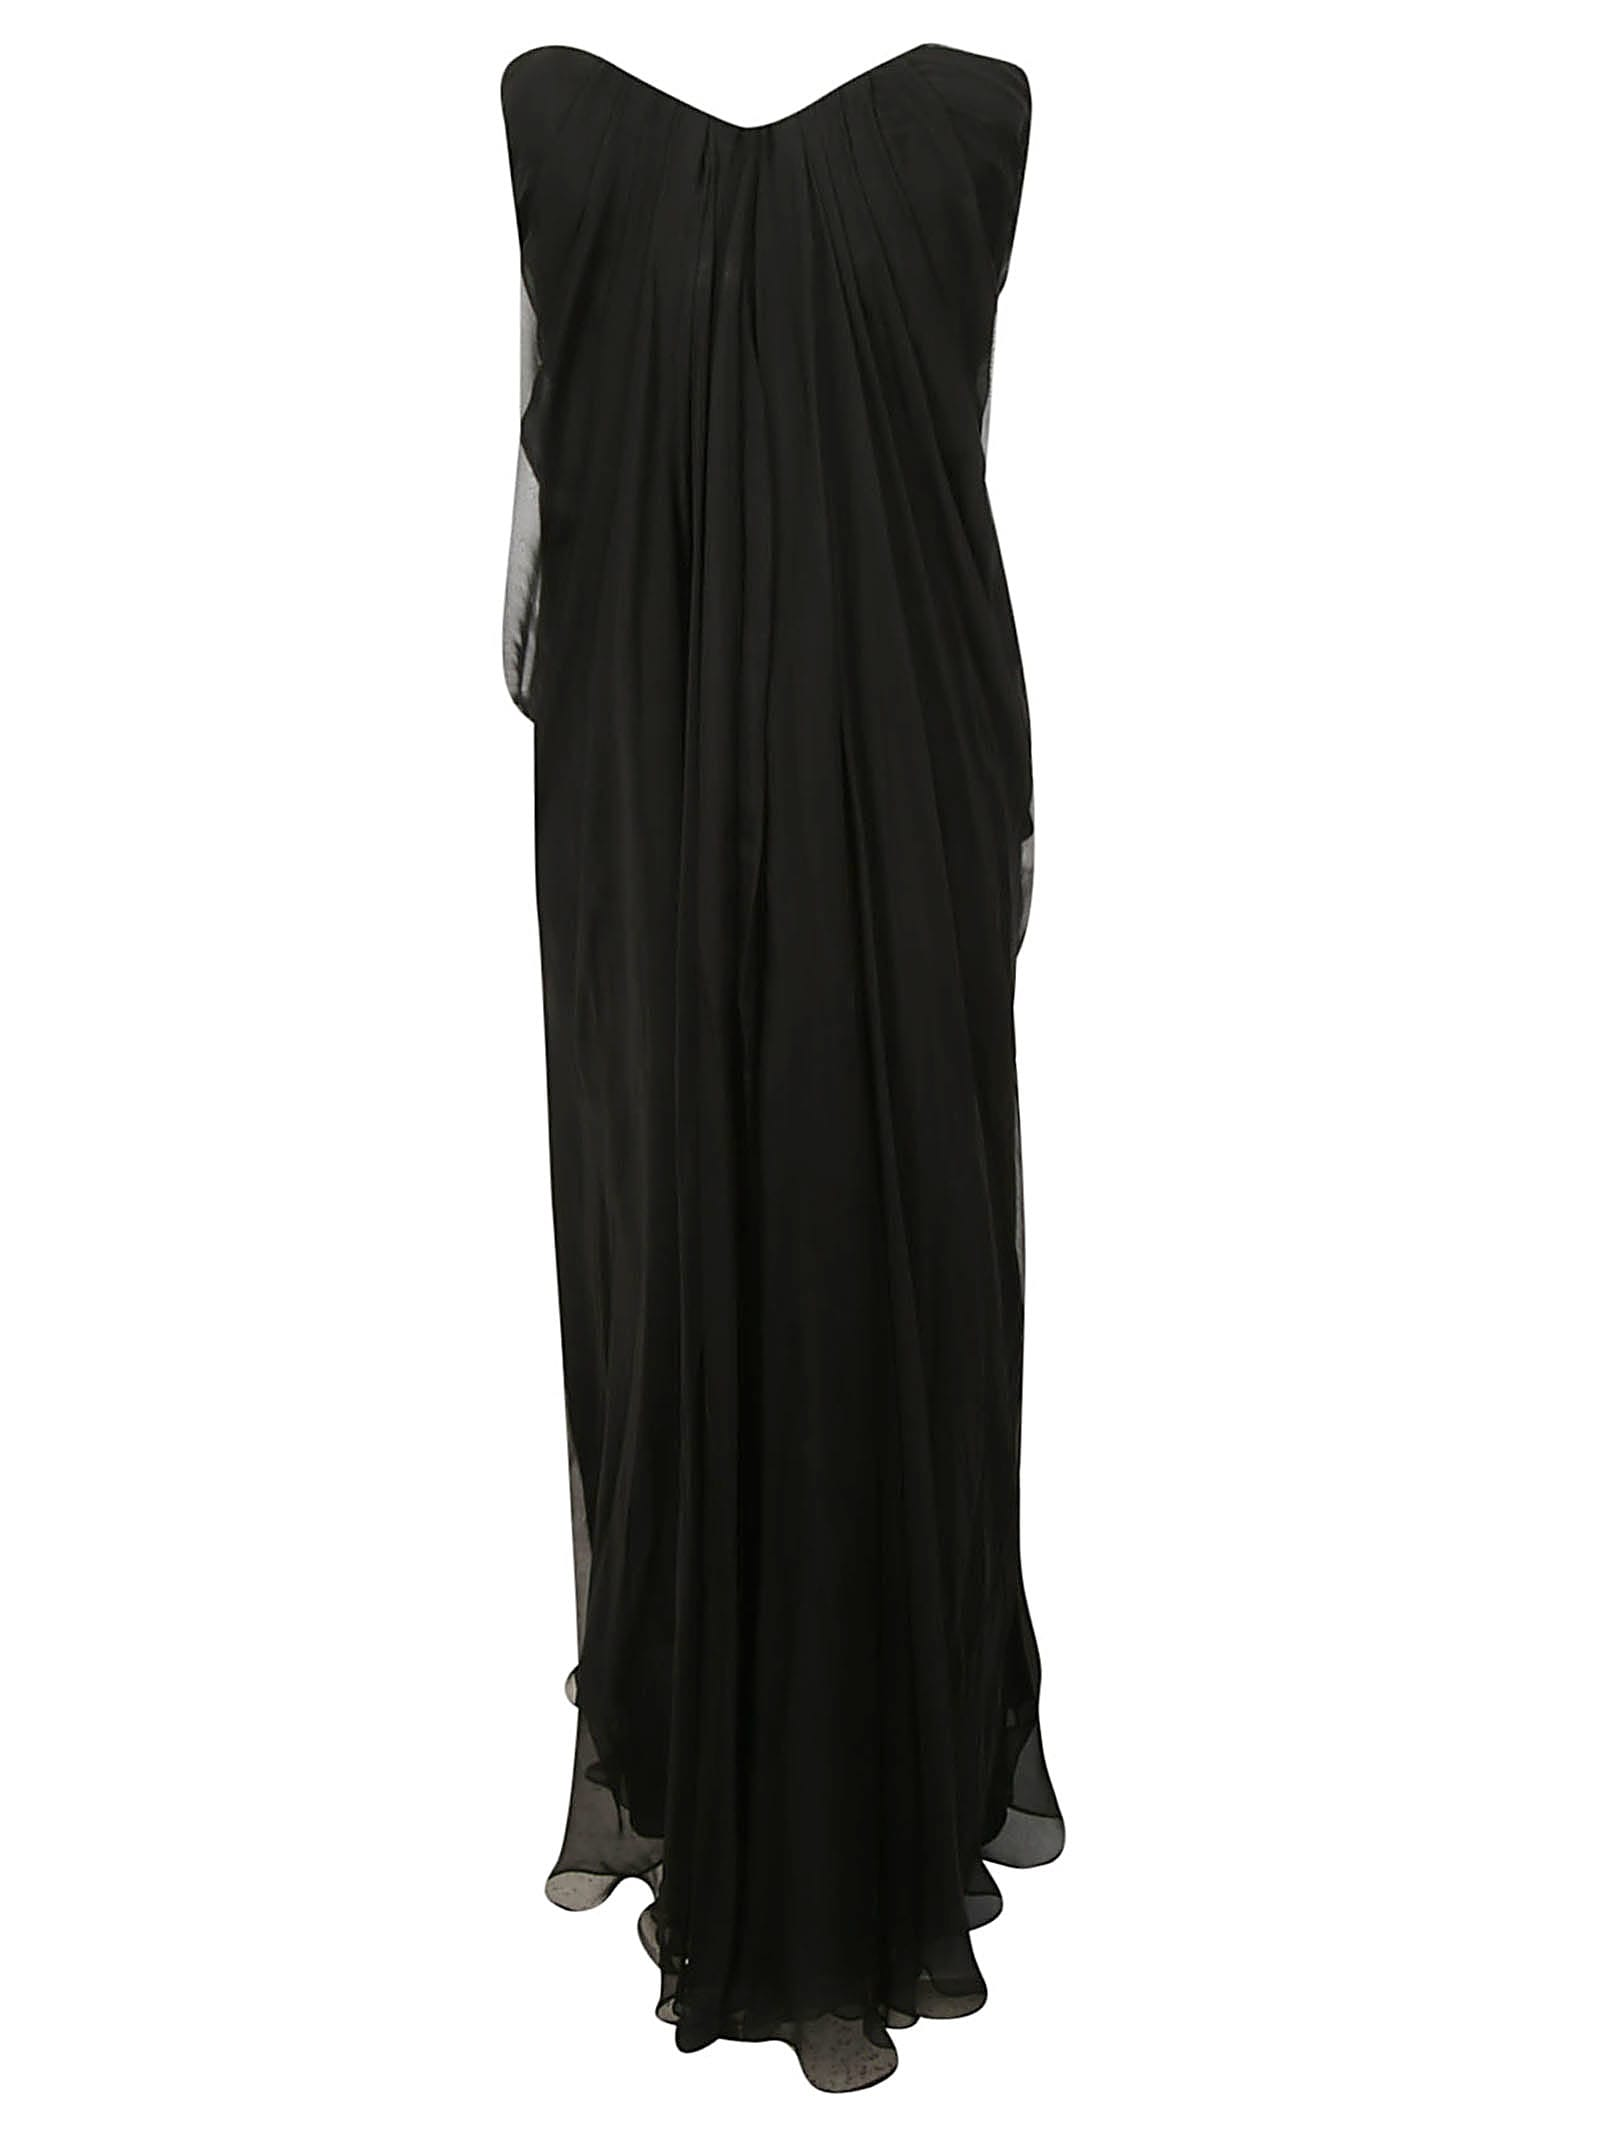 Alexander McQueen Strapless Bandeau Dress